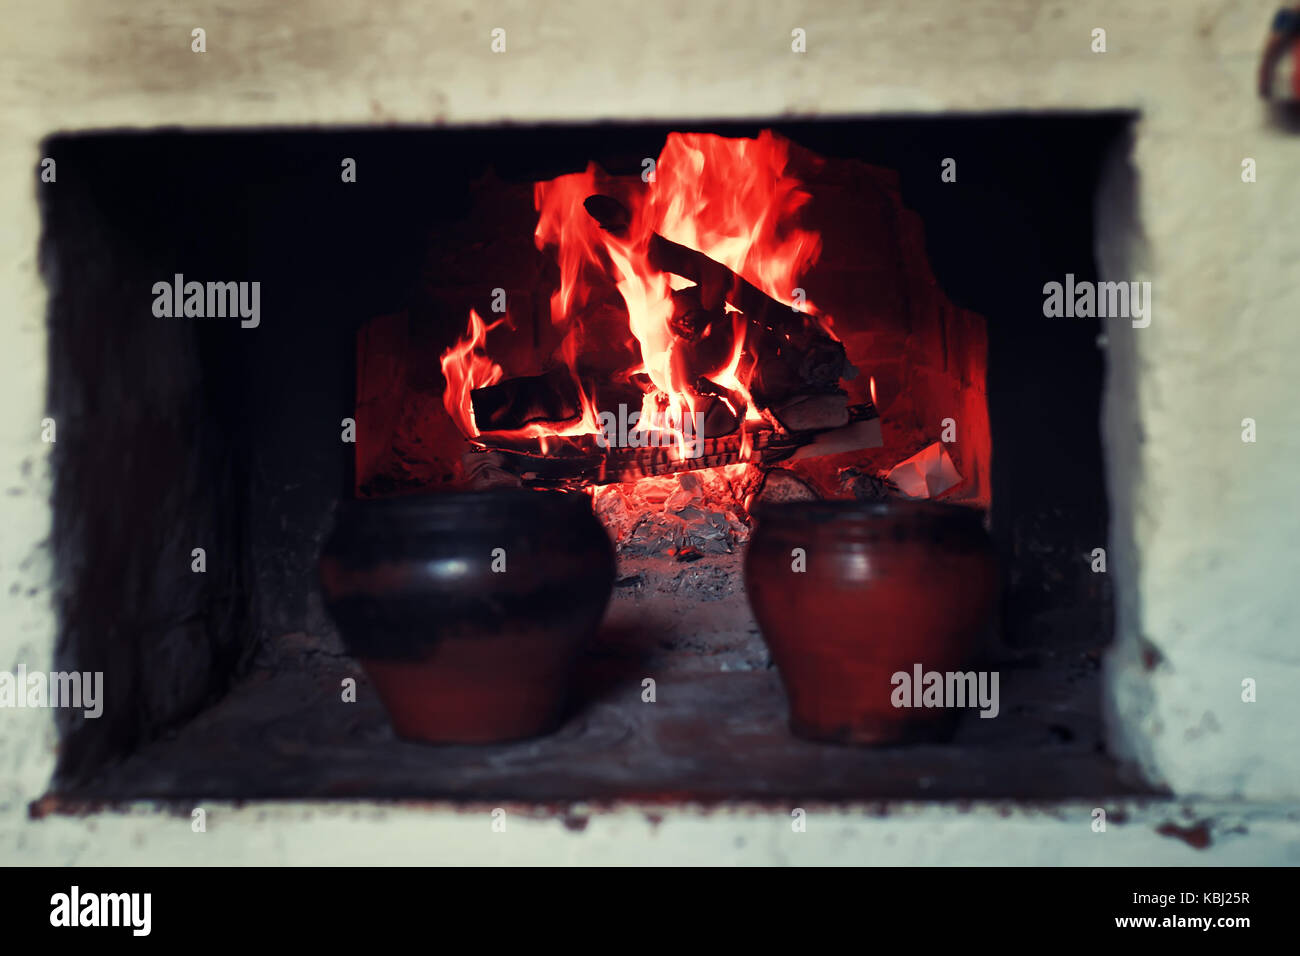 pot in the oven and oven fork - Stock Image